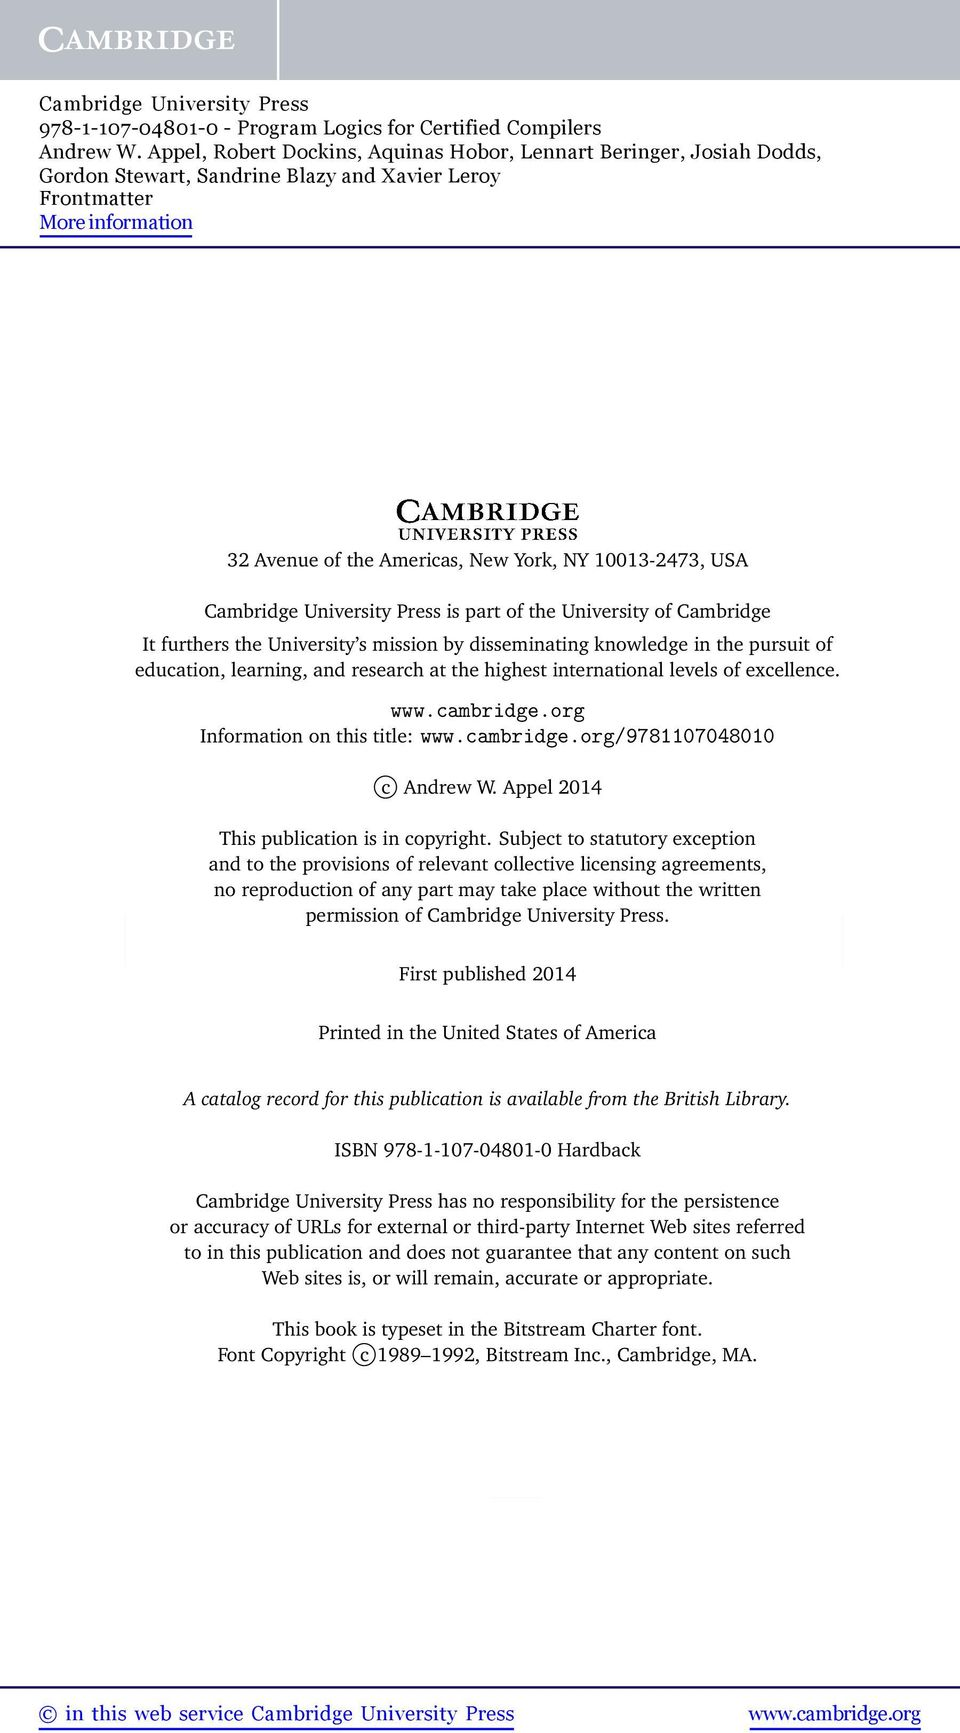 Subject to statutory exception and to the provisions of relevant collective licensing agreements, no reproduction of any part may take place without the written permission of Cambridge University